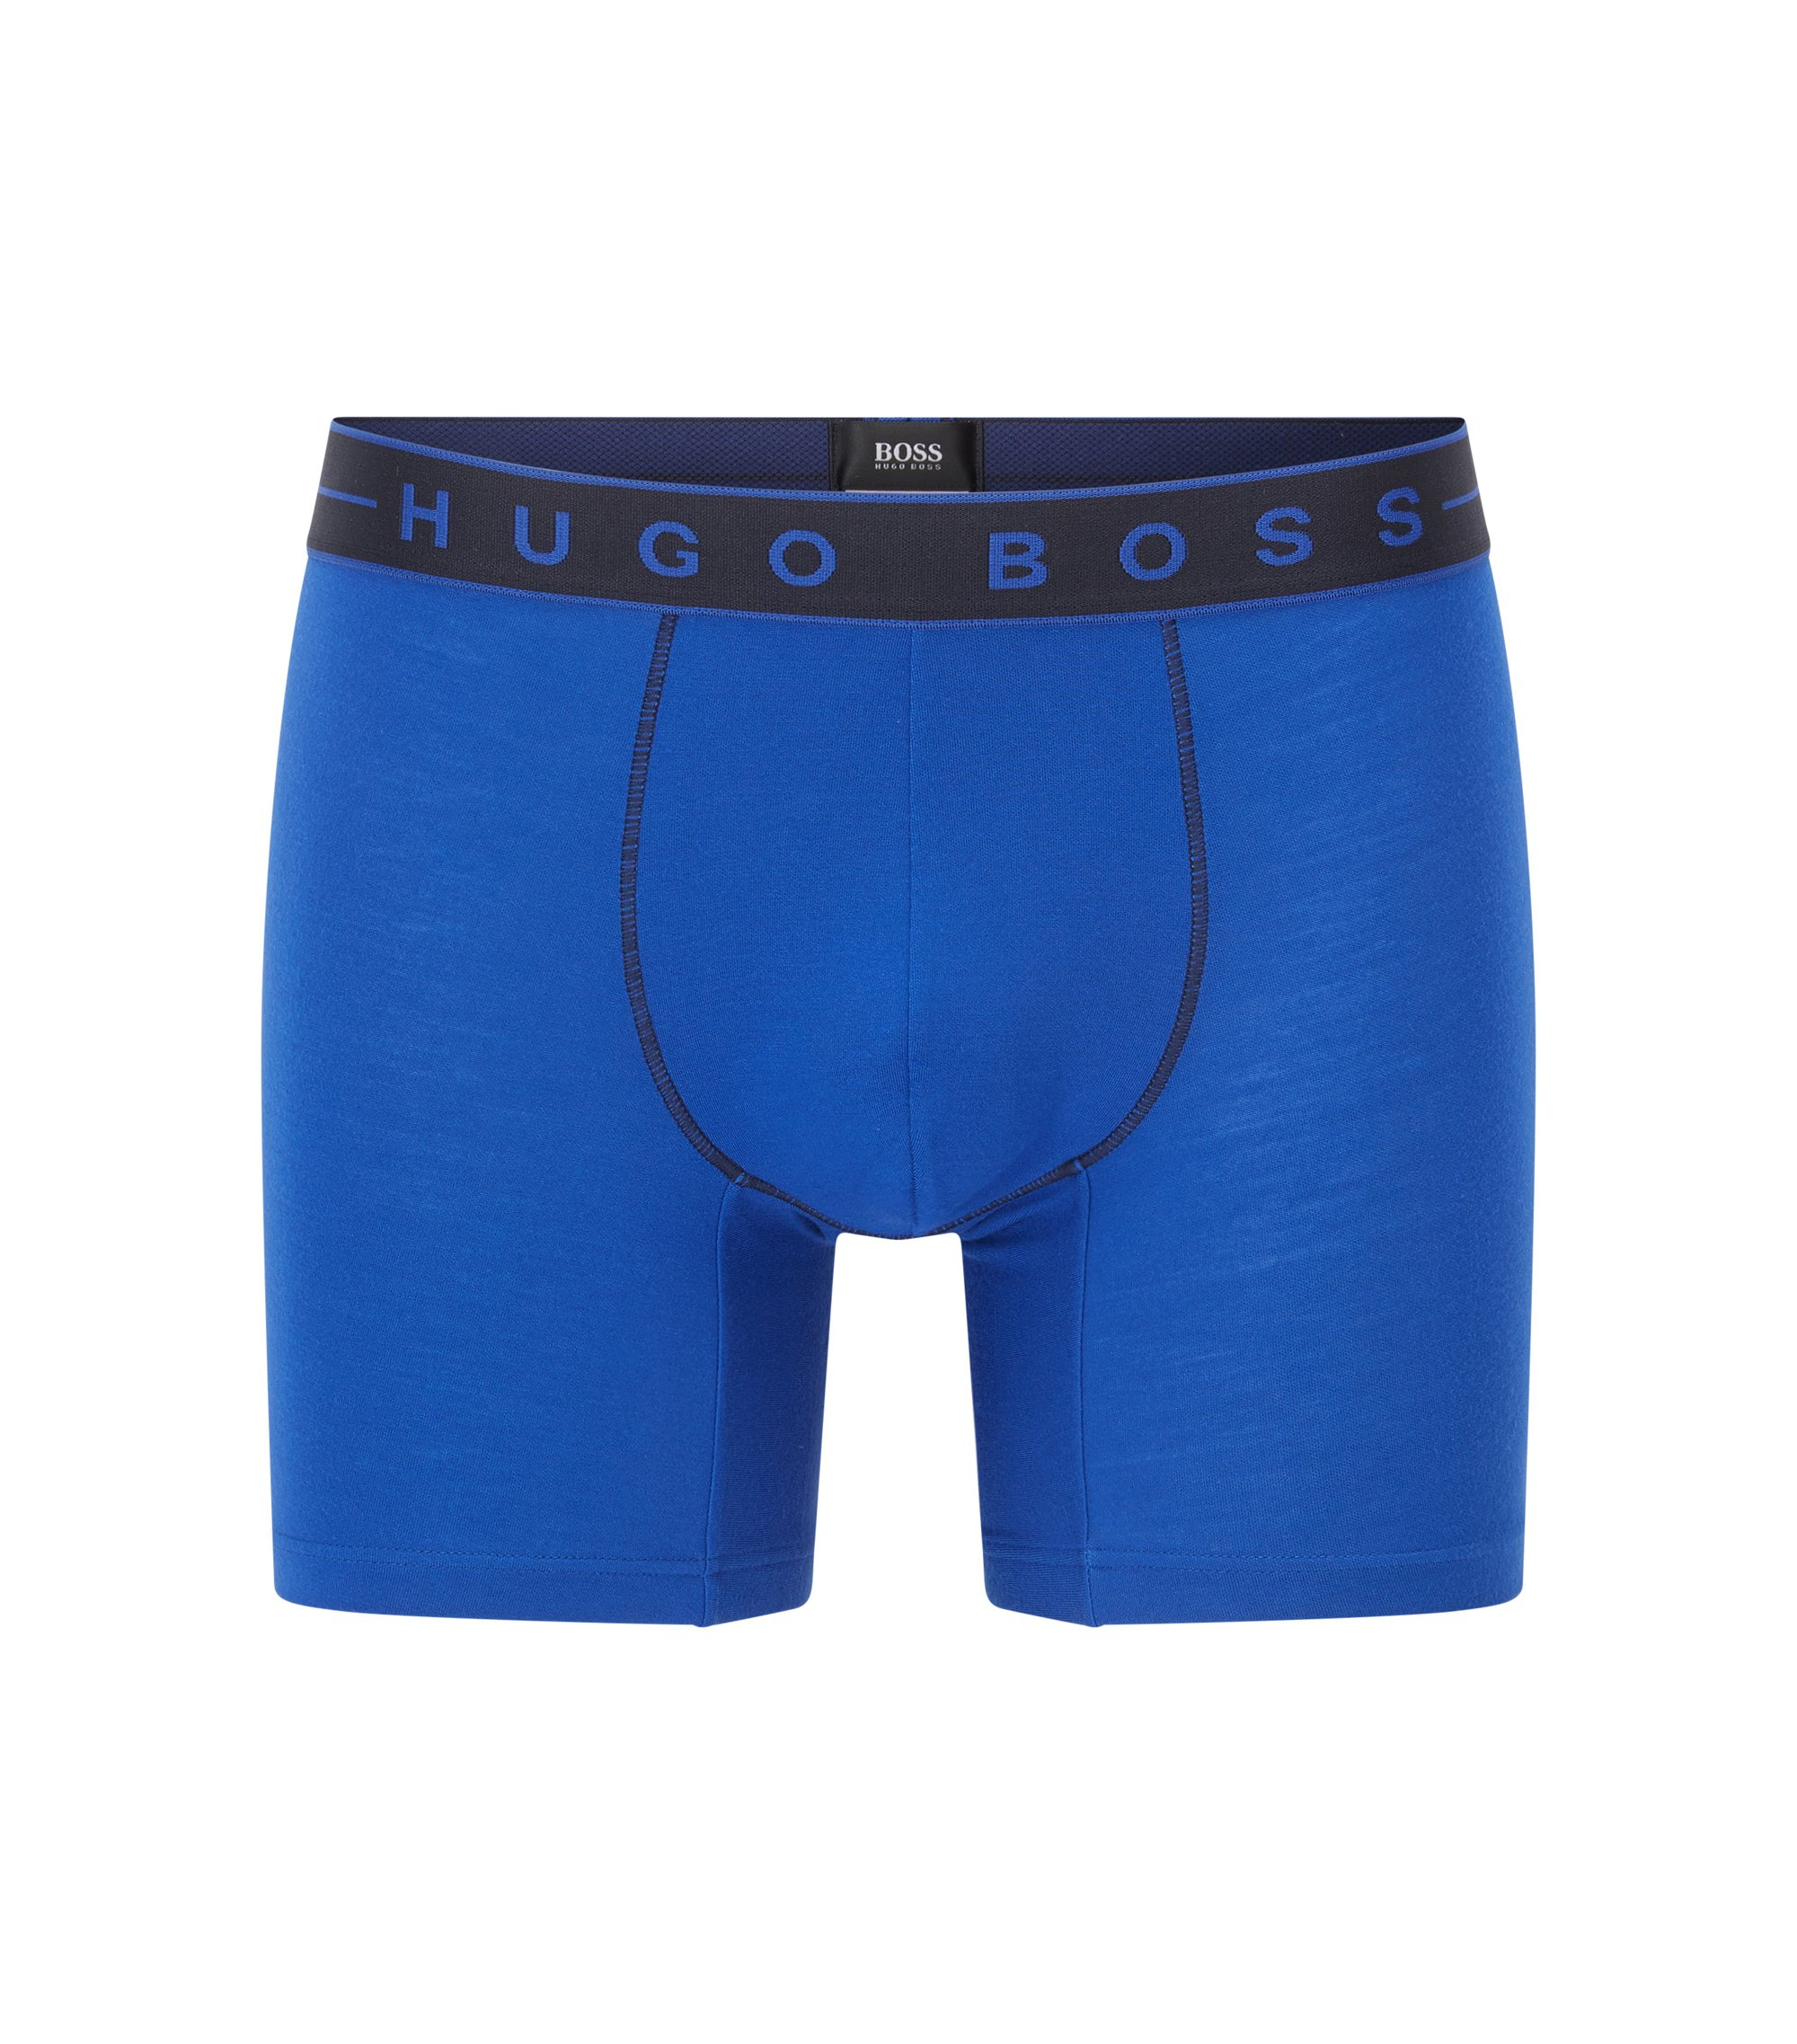 Microfiber Boxer Brief | Boxer Brief 2 Tone, Blue